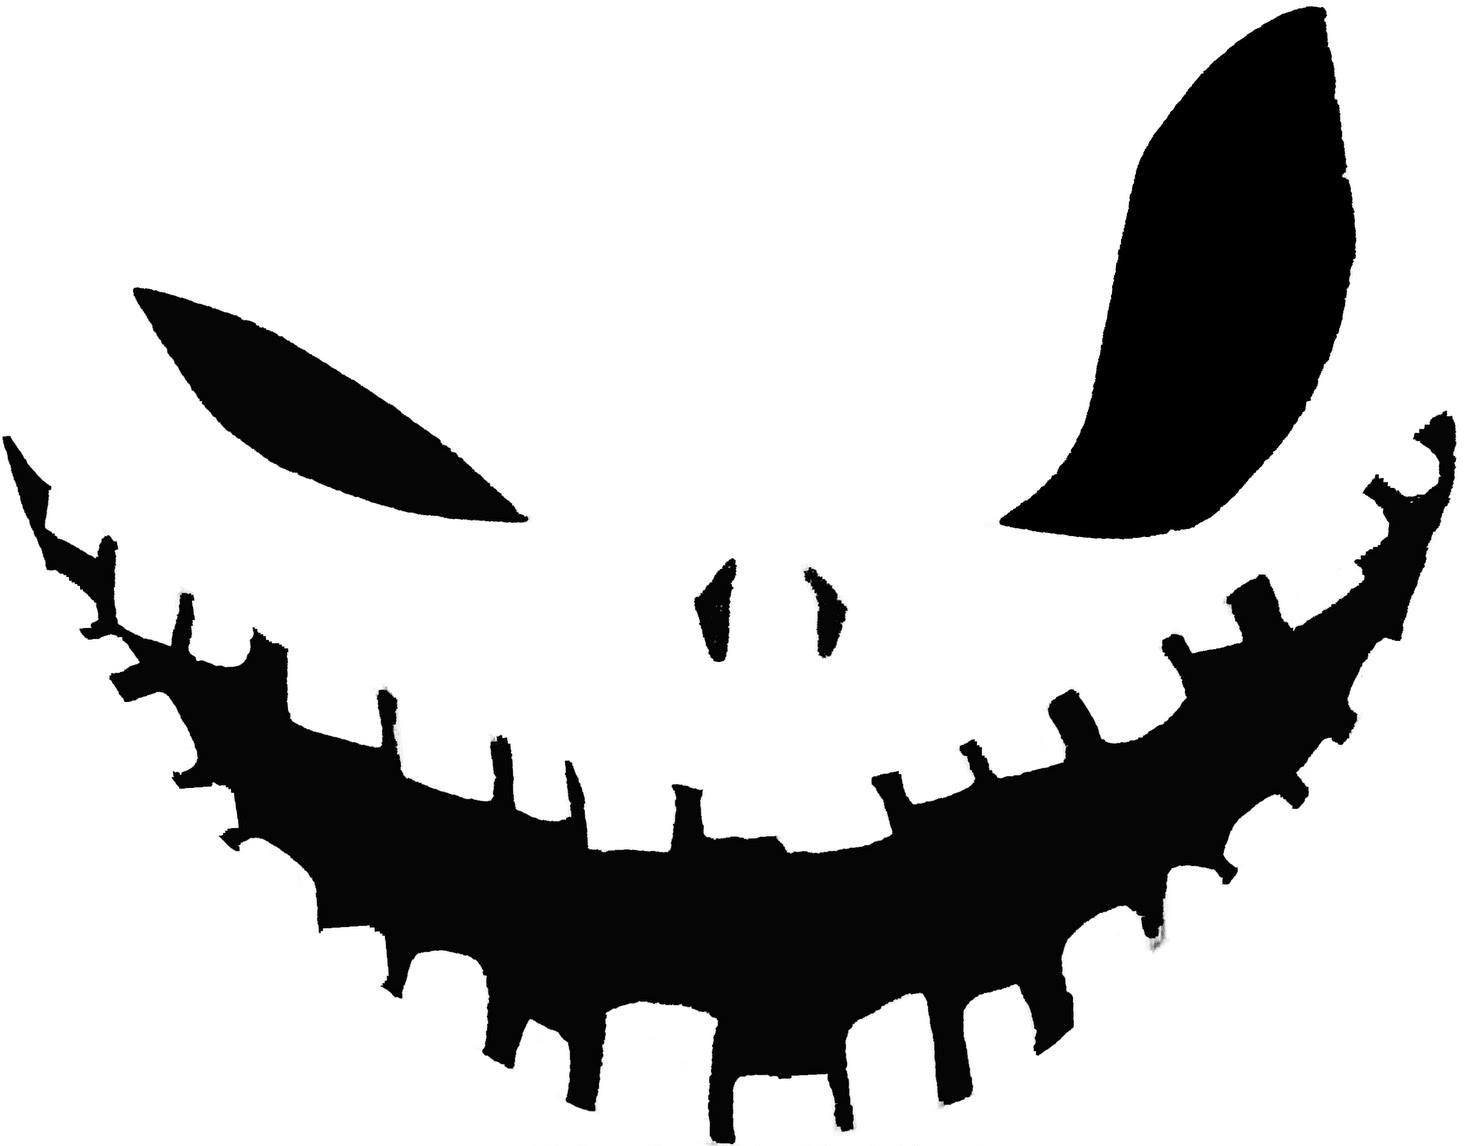 Big Eye Wicked Smile Pumpkin Face Free Carving Template